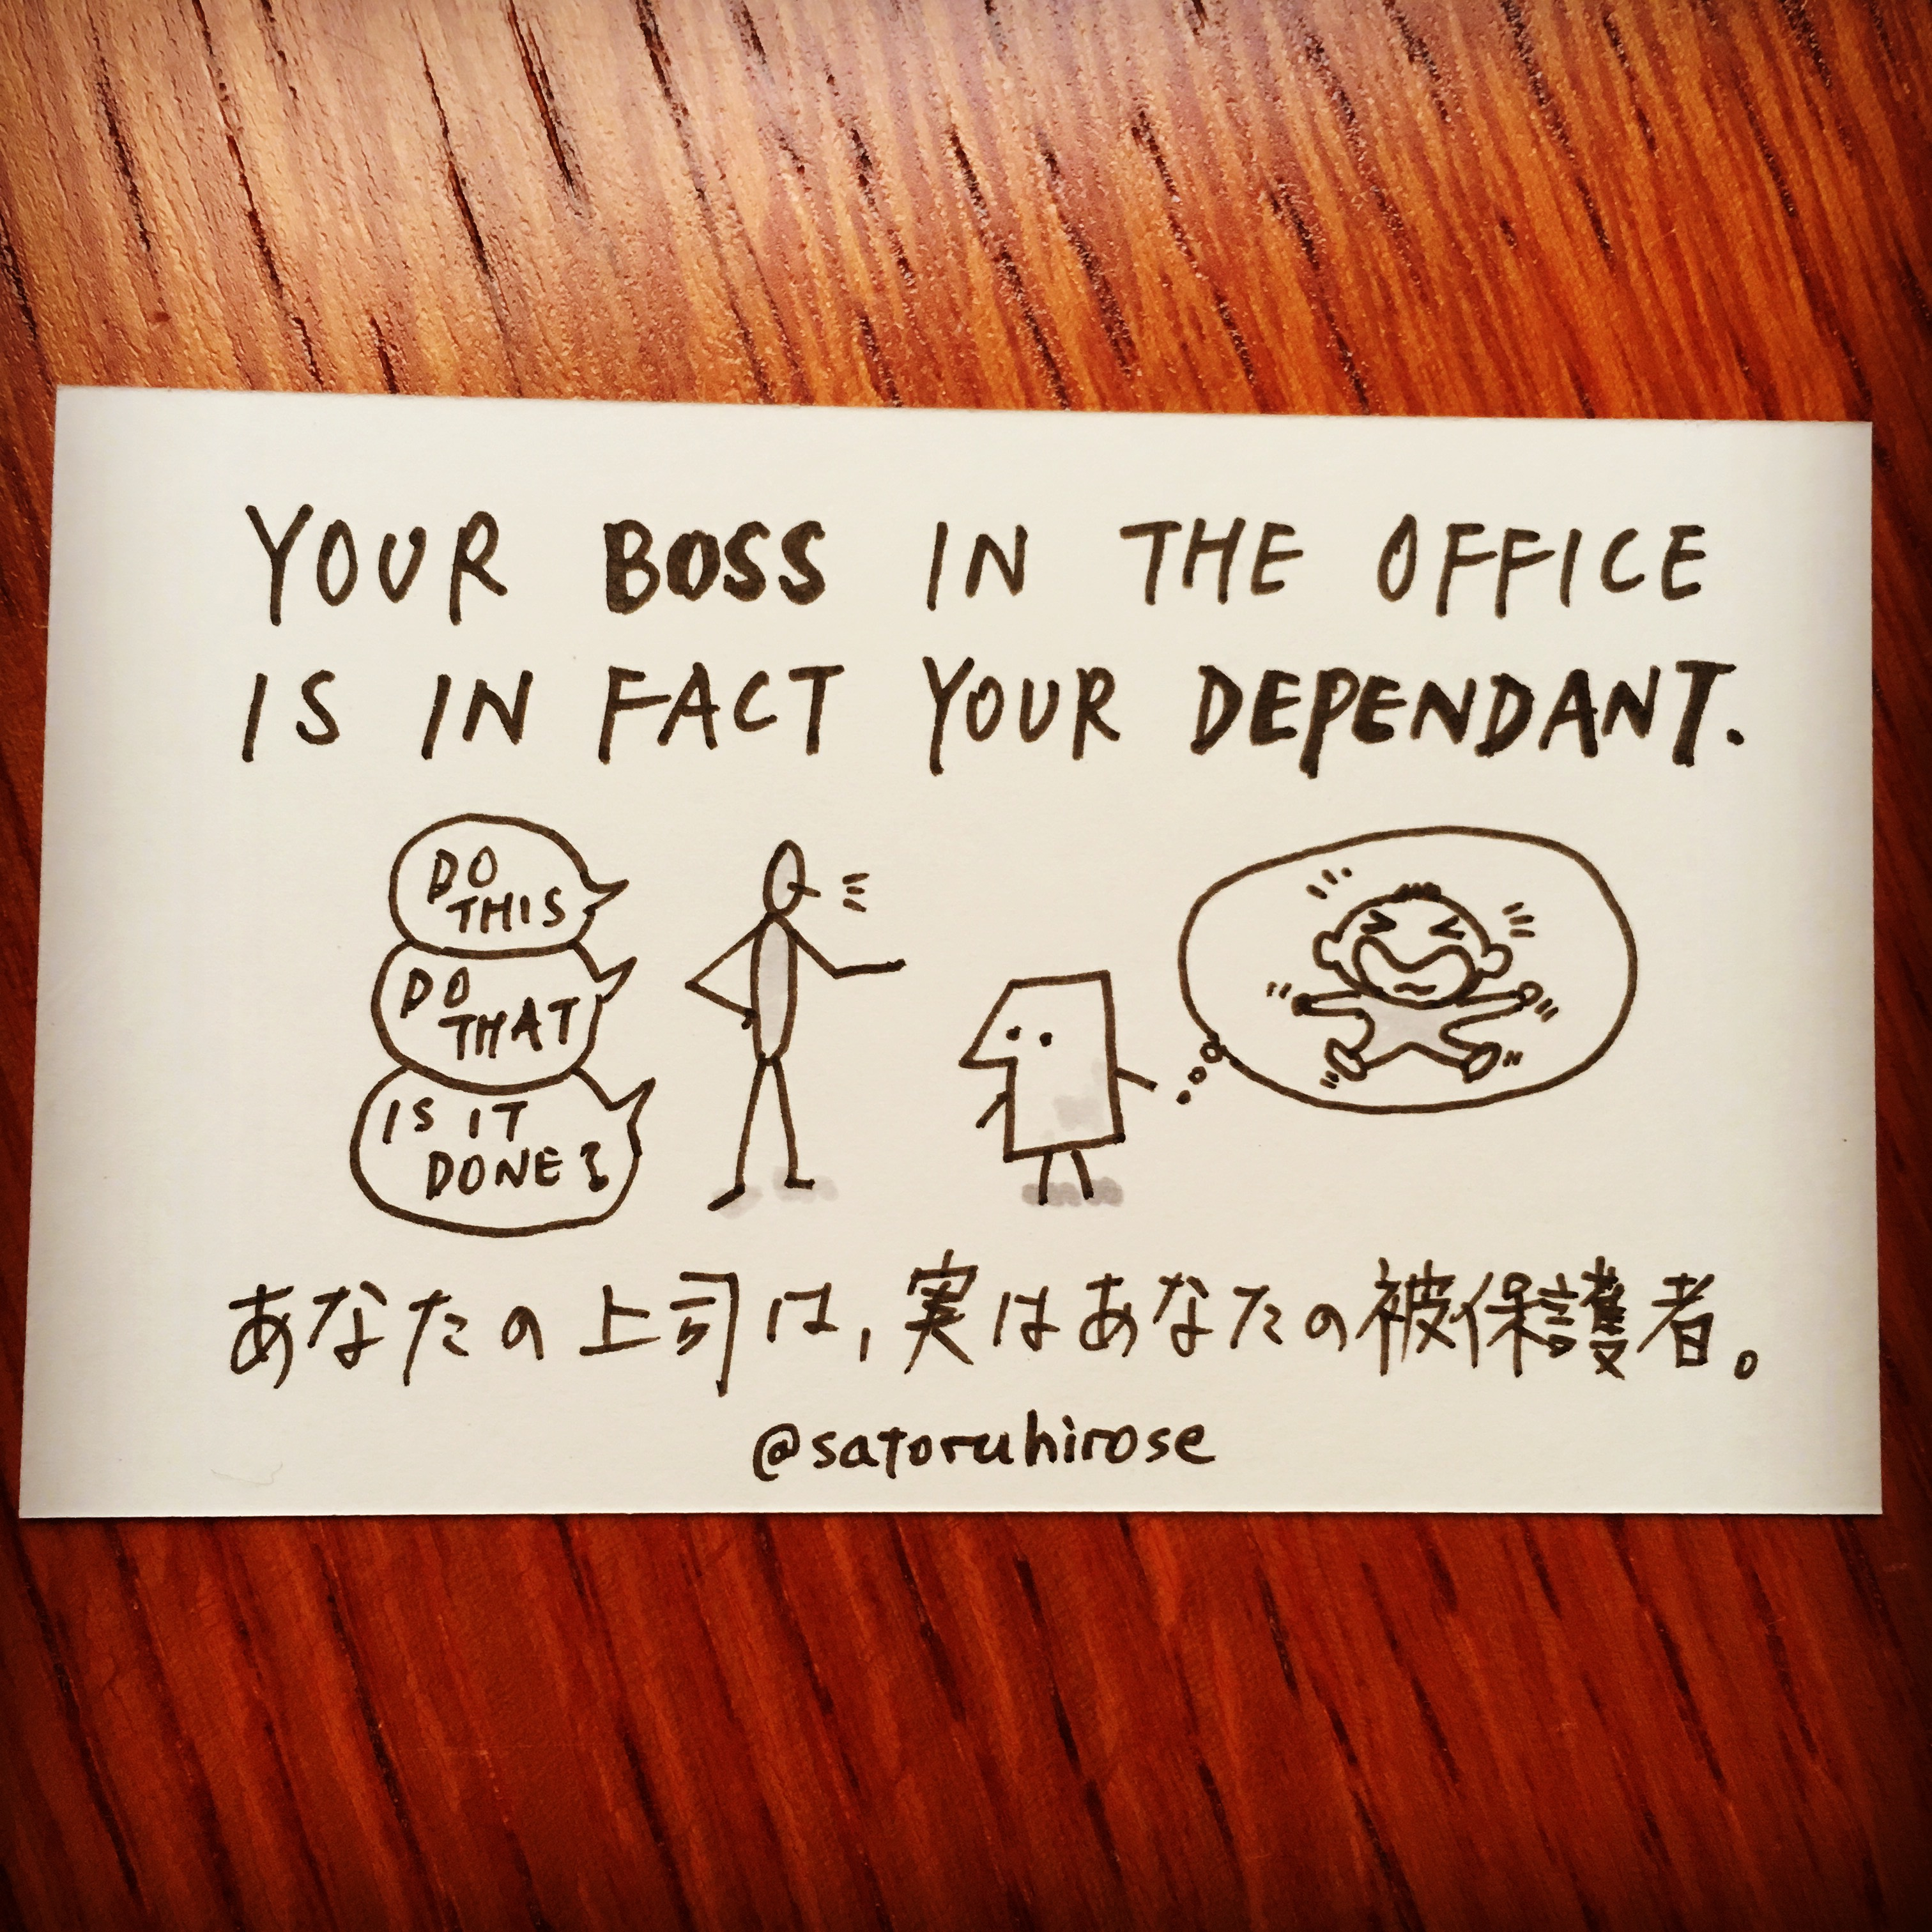 Your boss in the office is in fact your dependent.